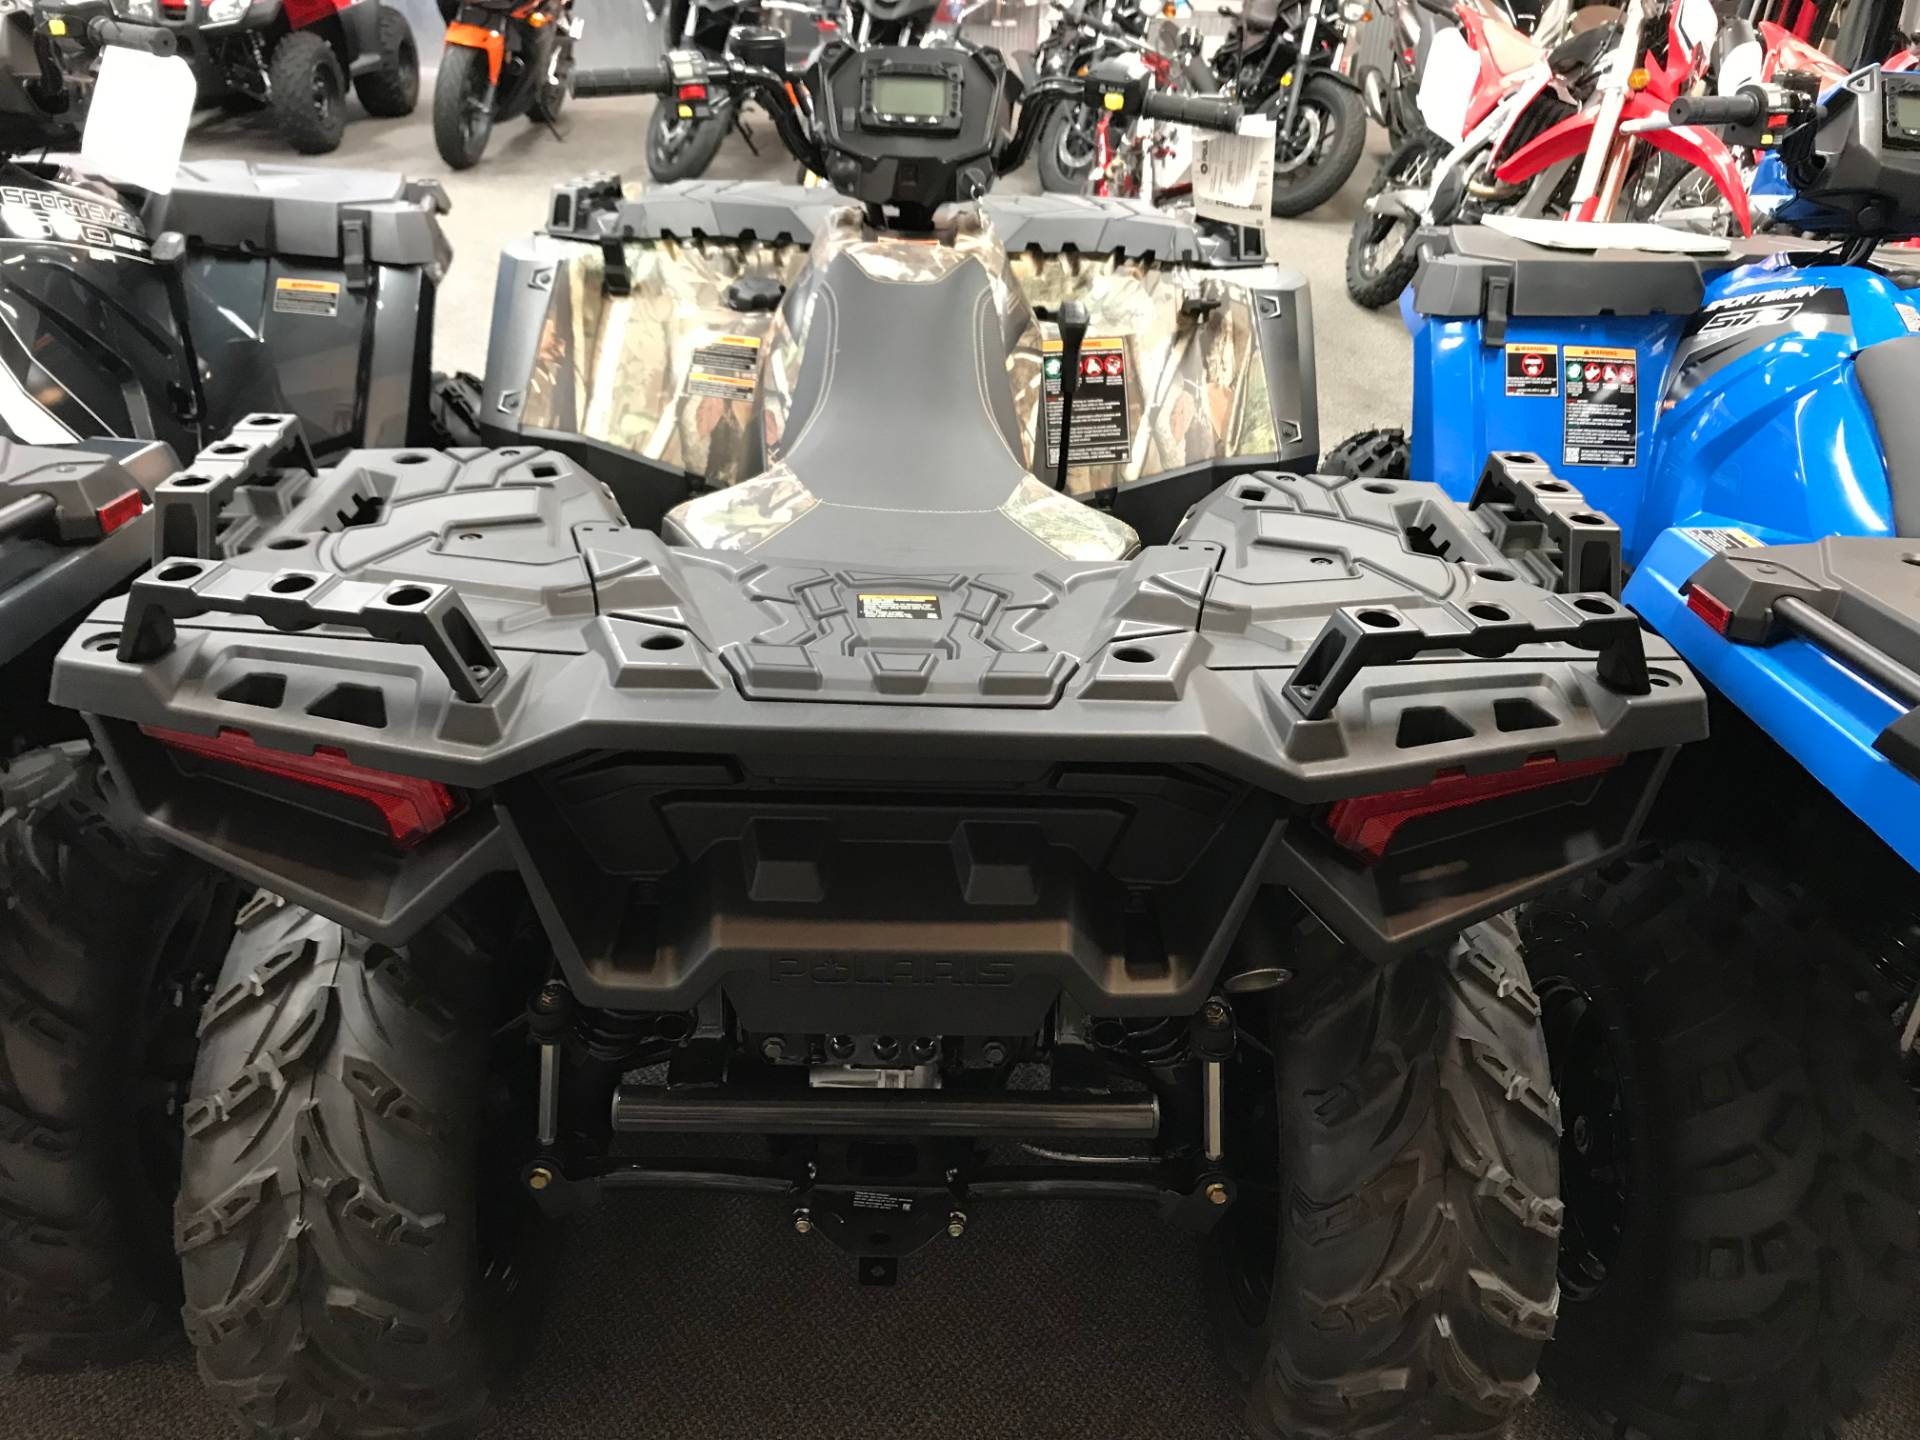 2019 Polaris Sportsman 850 SP in Sterling, Illinois - Photo 4